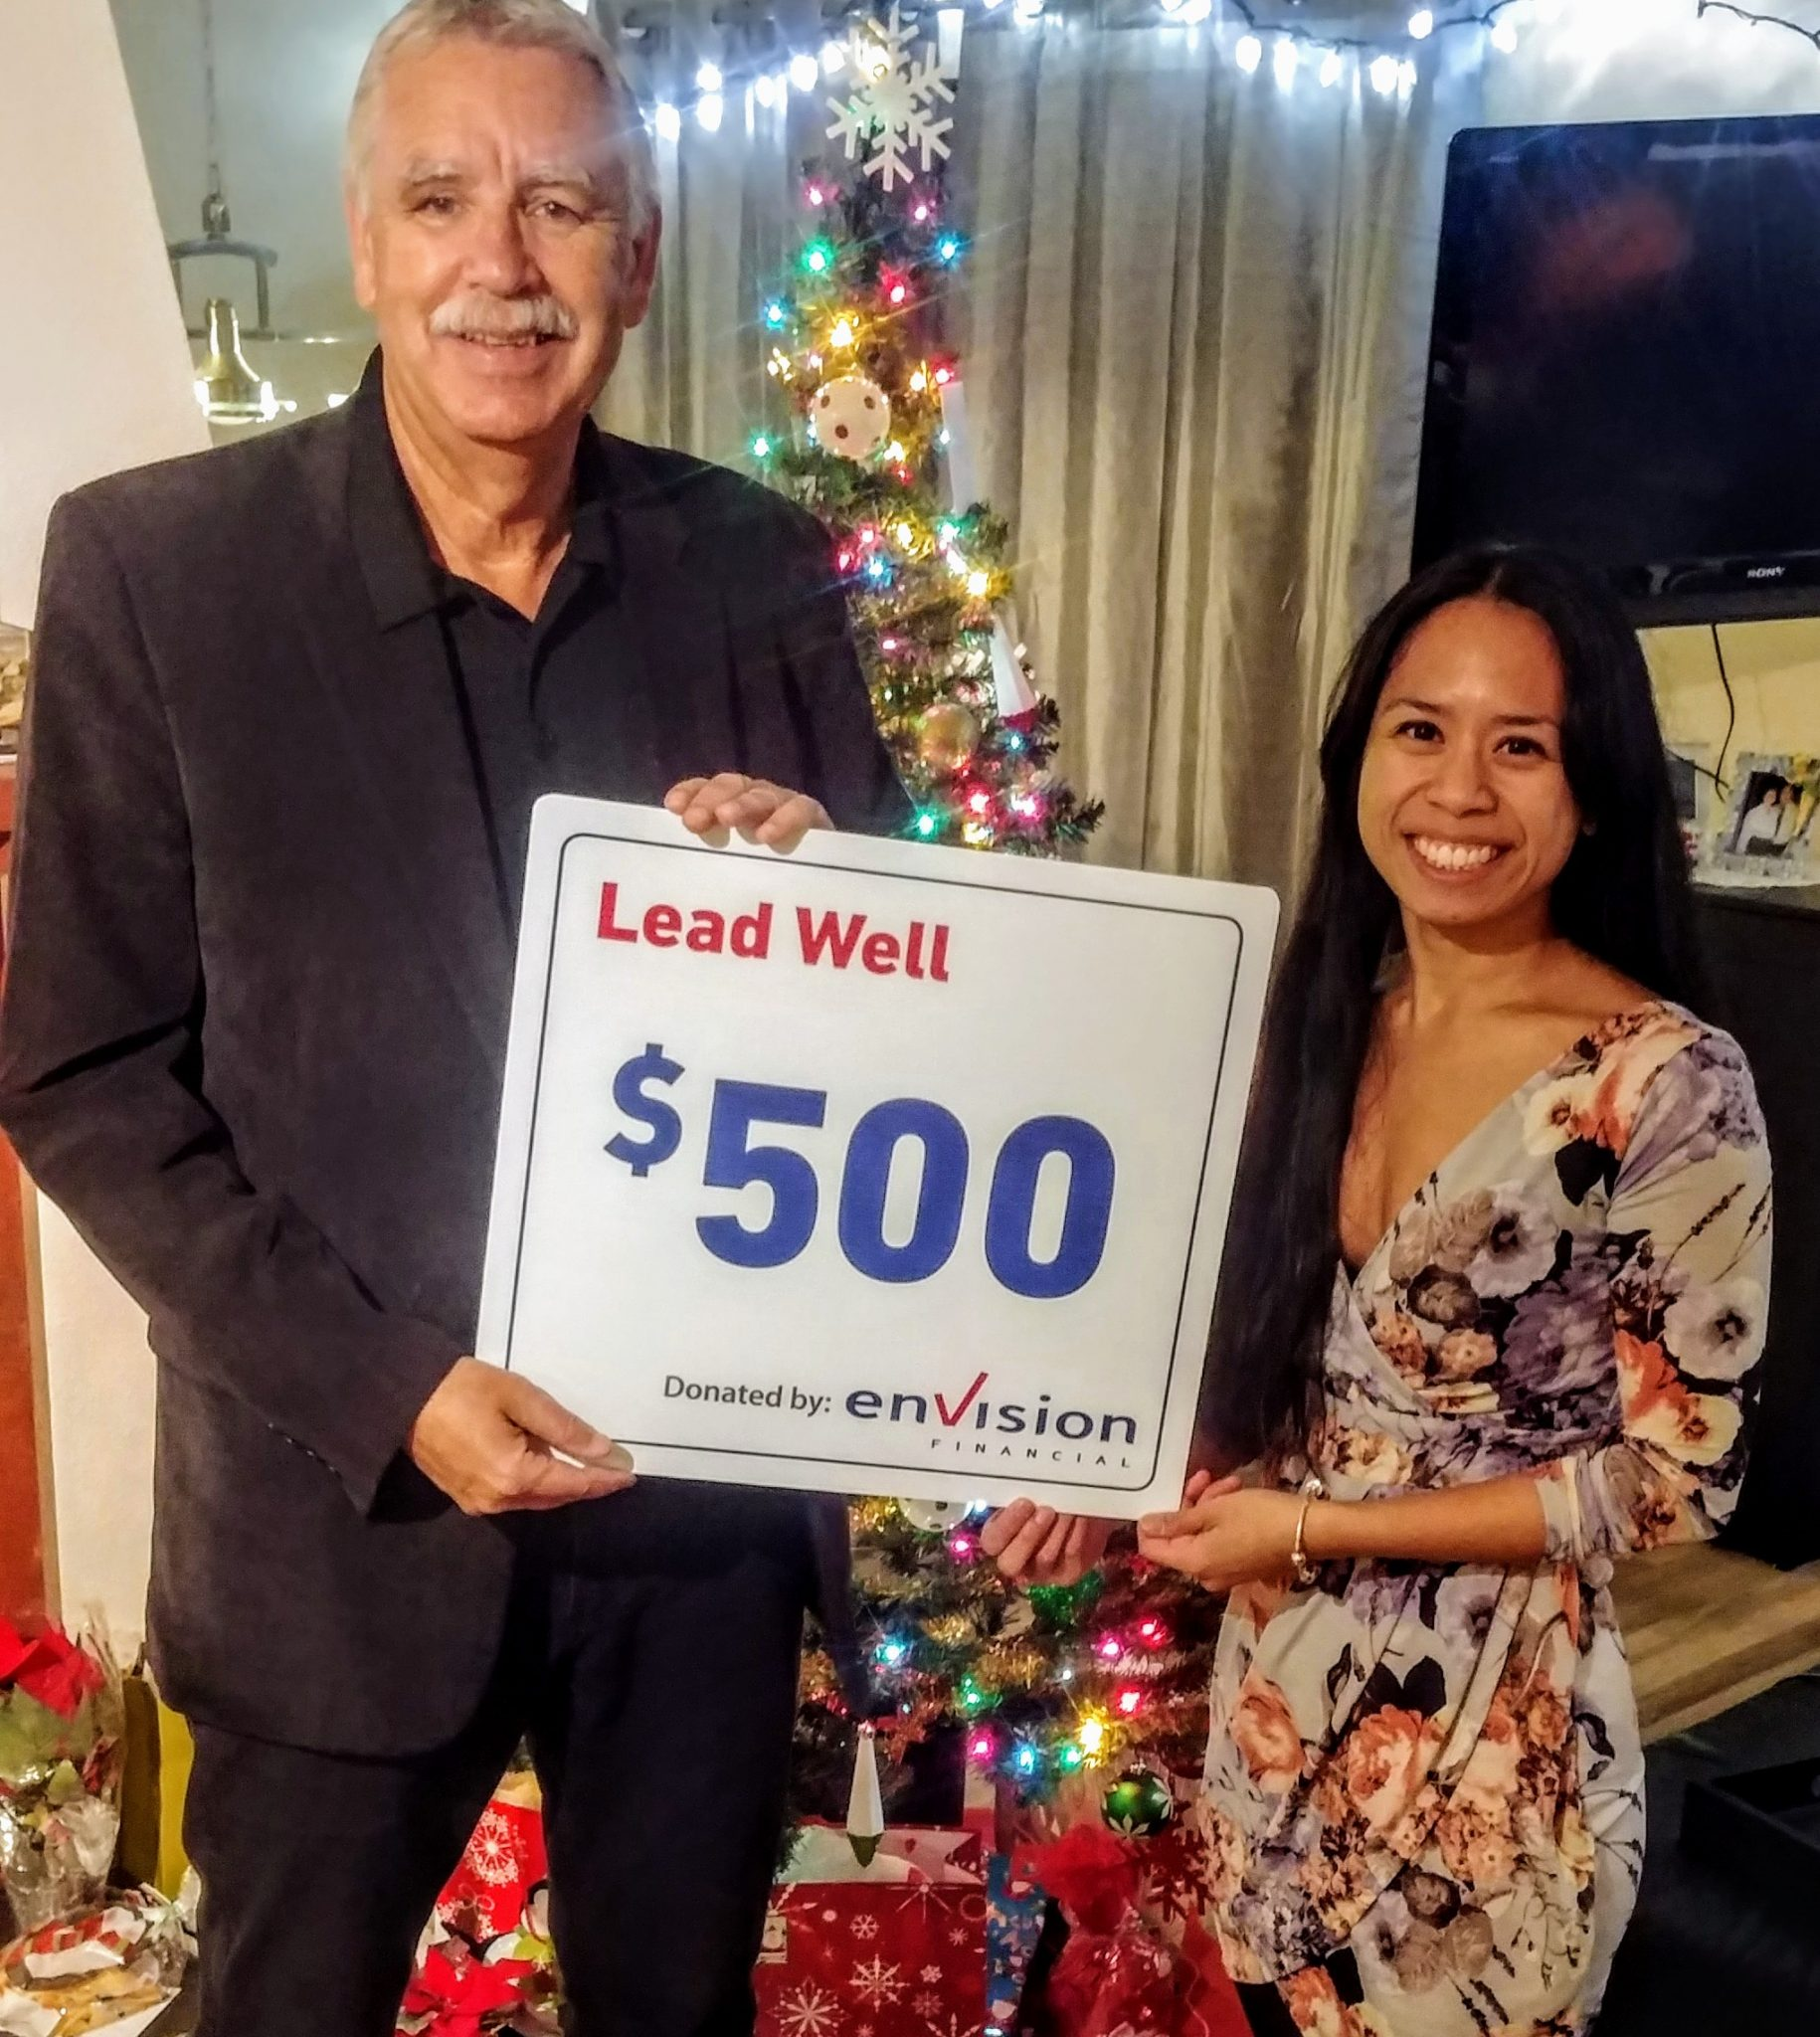 Envision Financial Supports Heart to Heart Haiti through the Lead Well Employee Donation Program